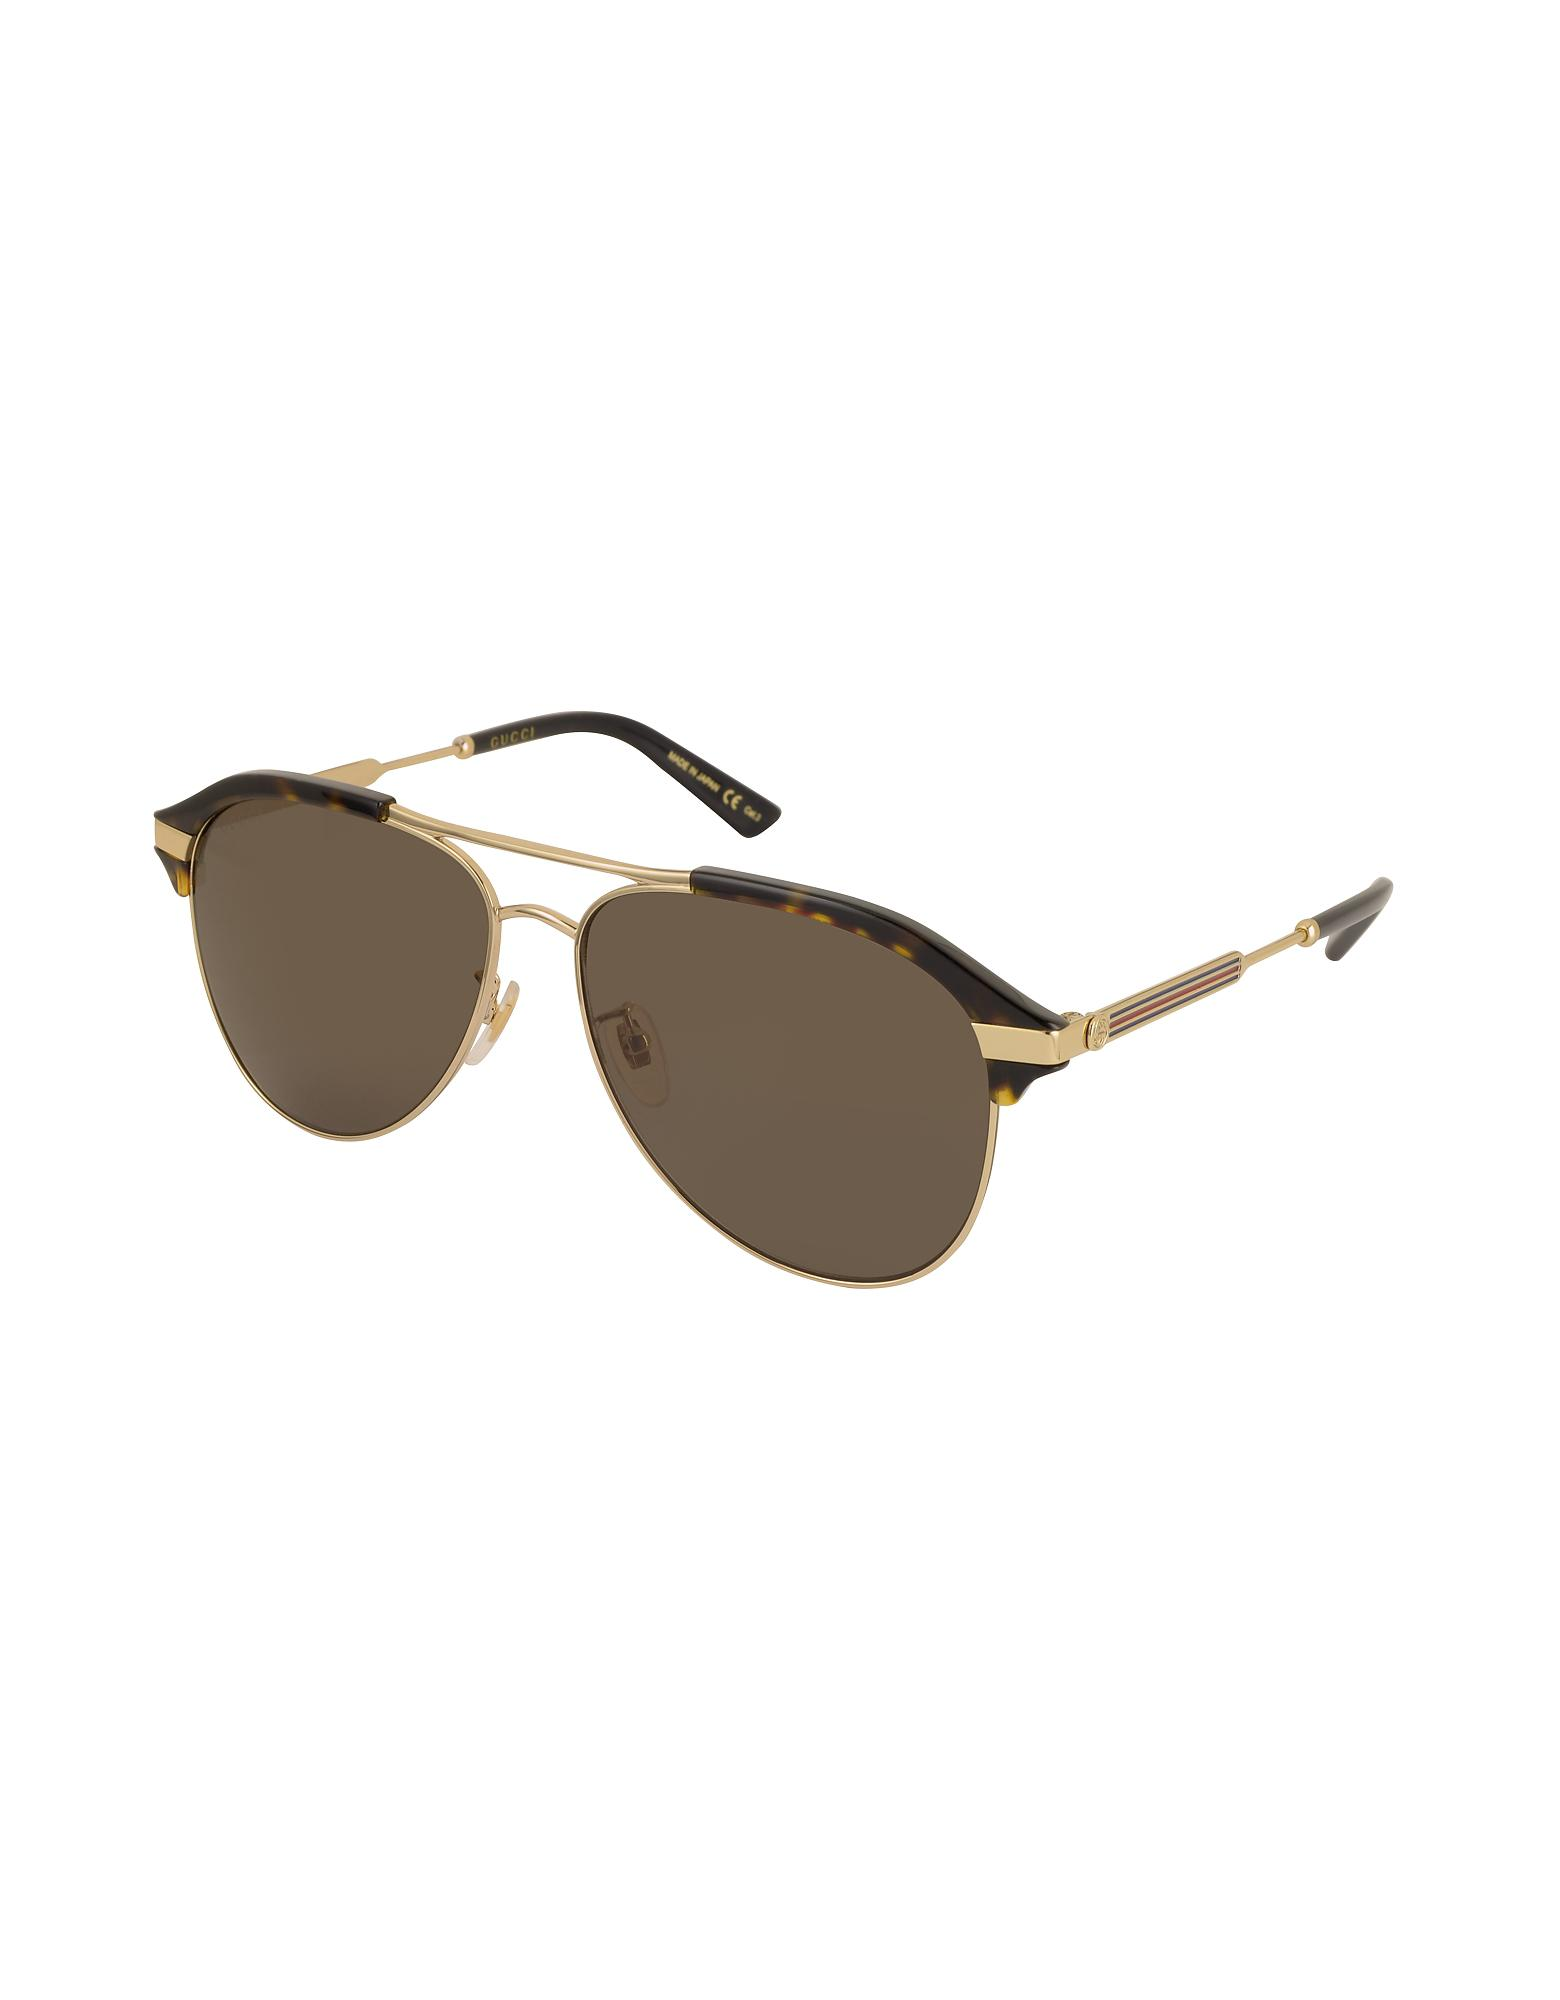 3cb01a5603e Lyst - Gucci Specialized Fit Aviator Metal Sunglasses in Brown for Men